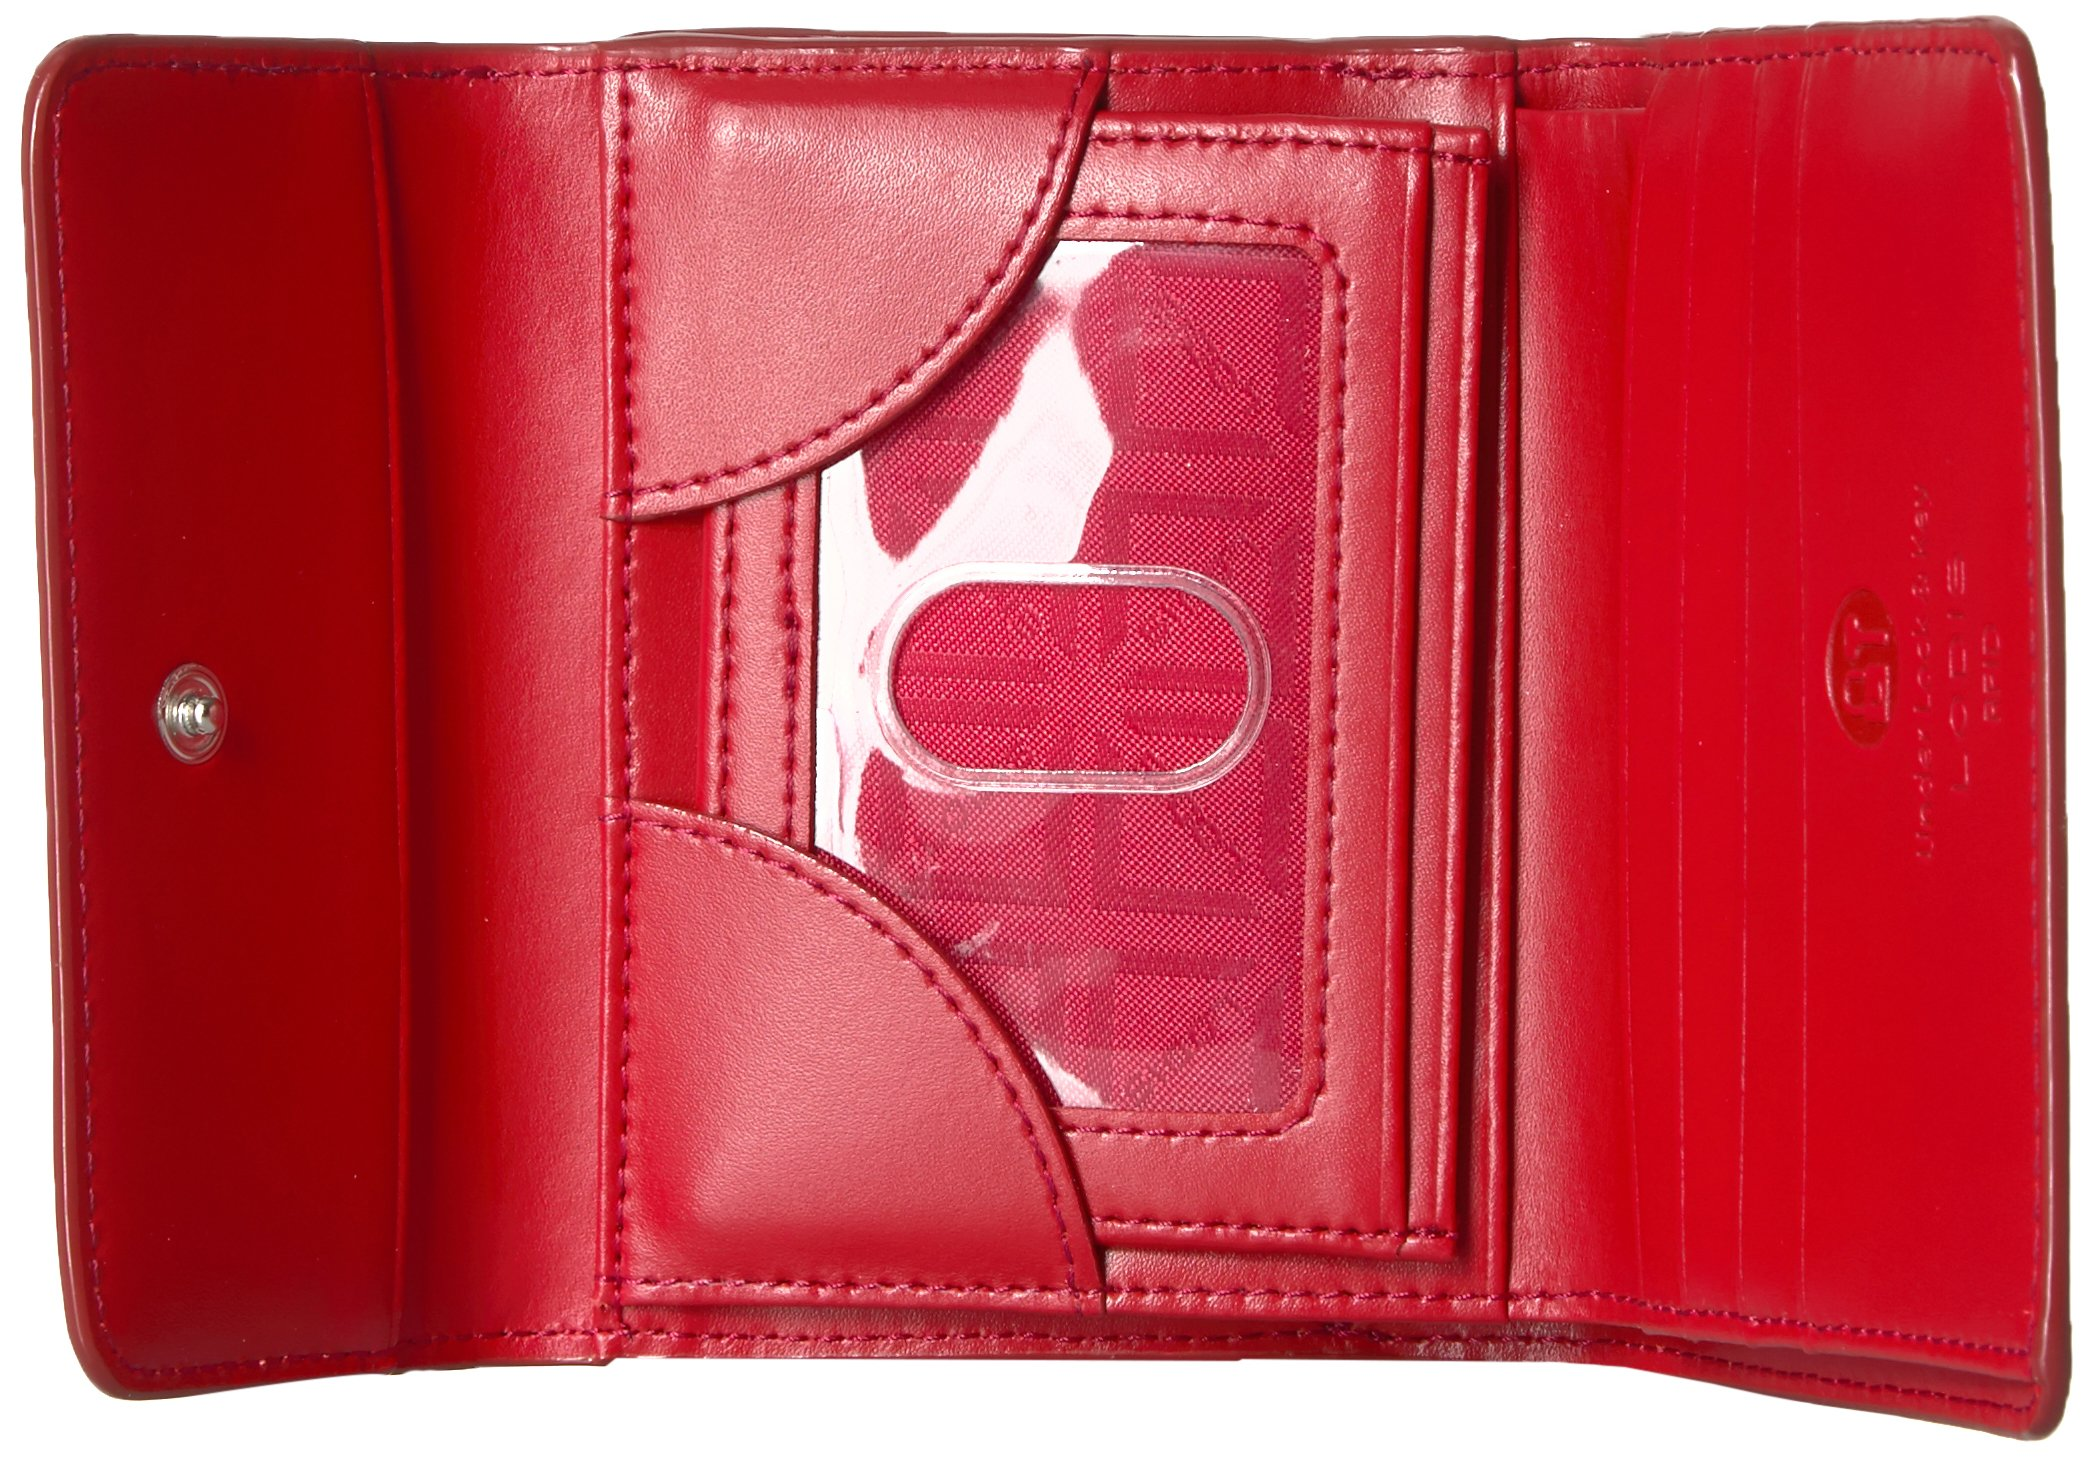 Lodis Audrey Rfid French Purse Wallet by Lodis (Image #4)